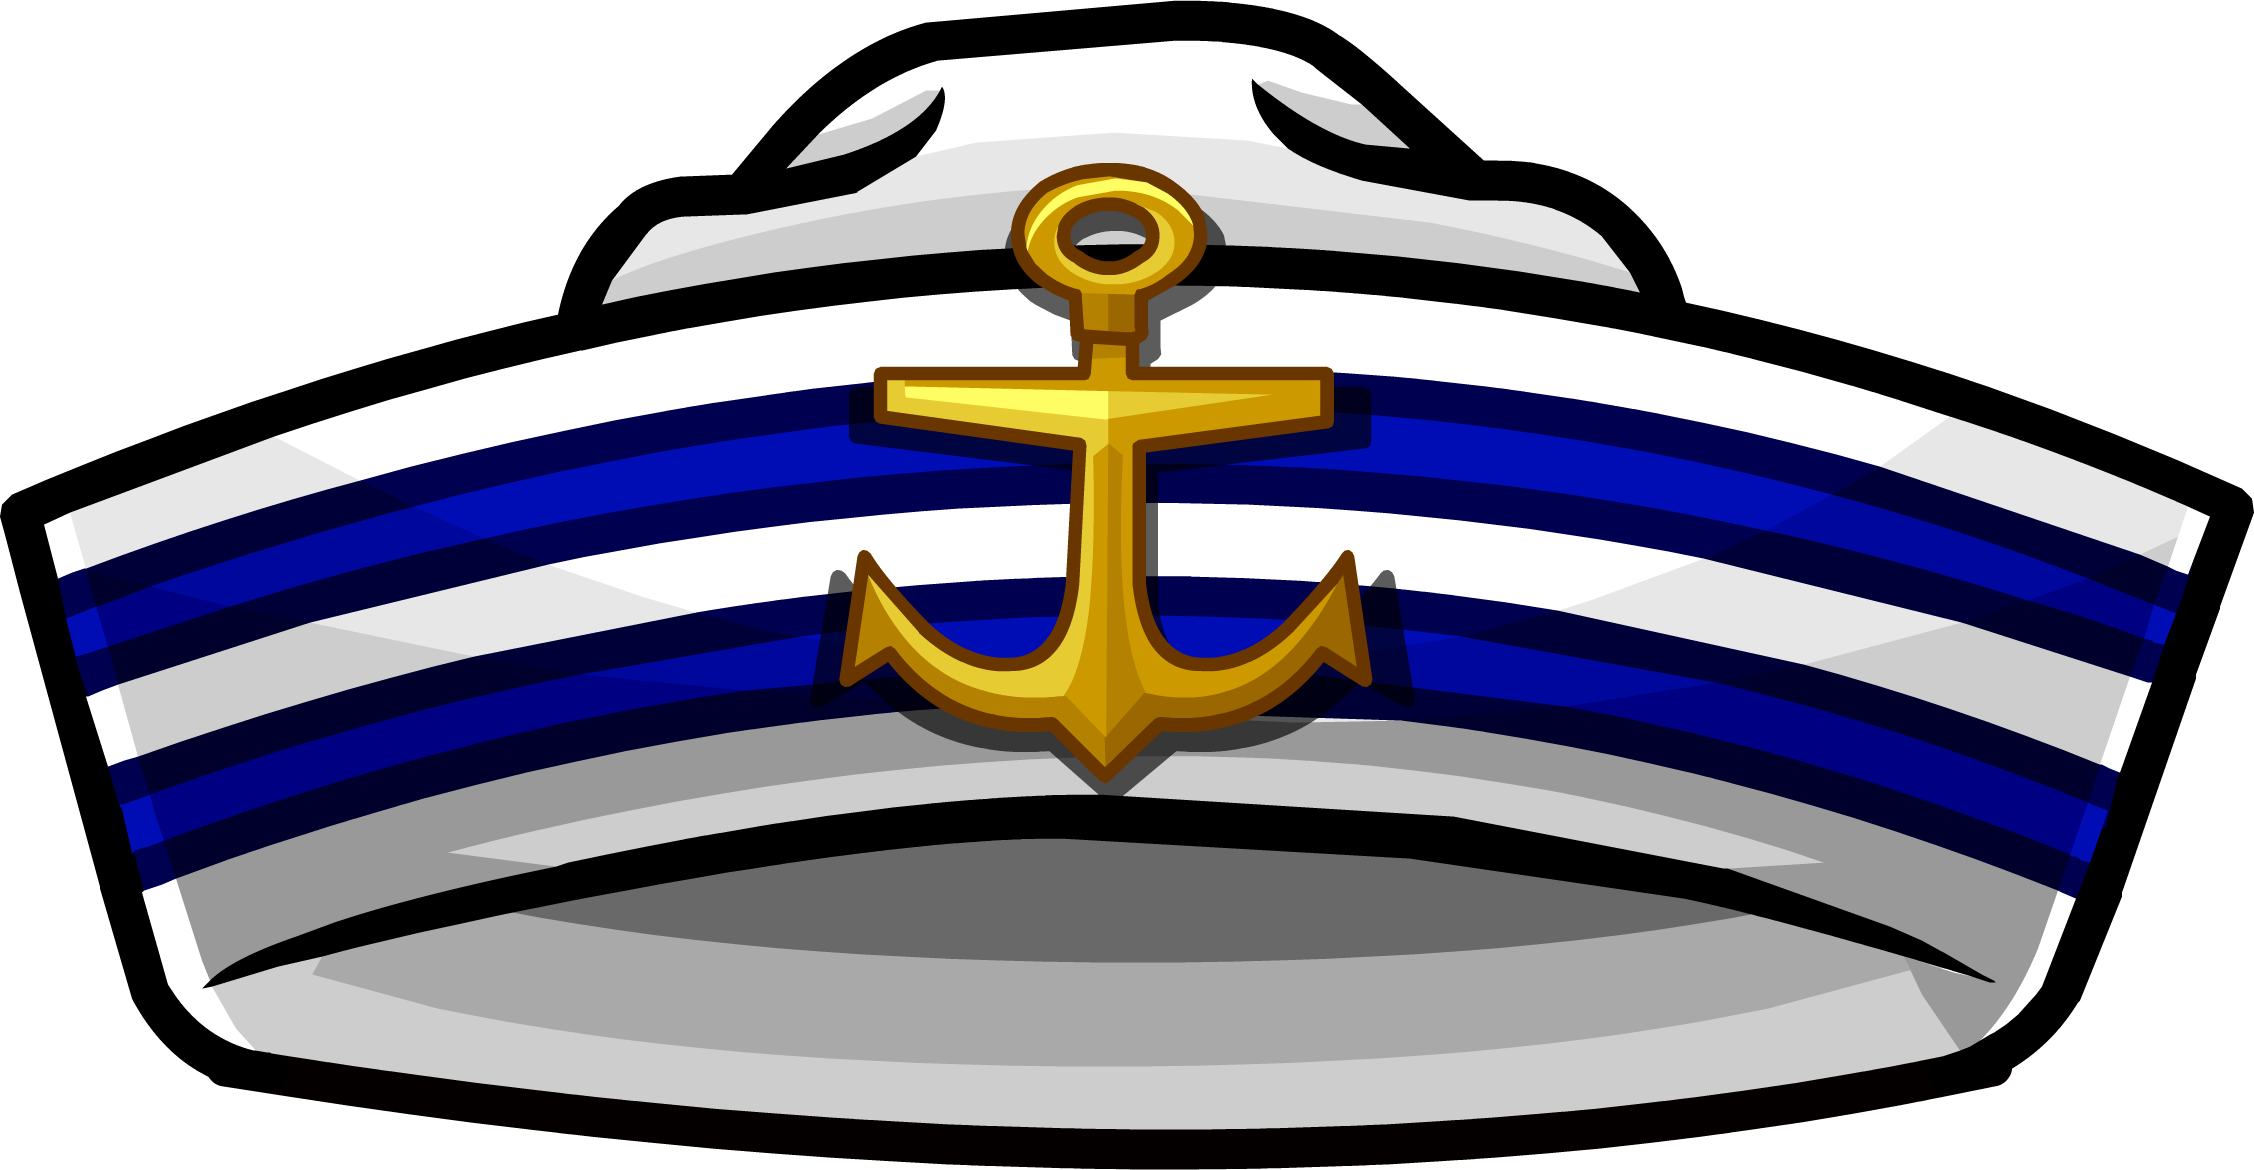 Sailor hat png. Collection of clipart